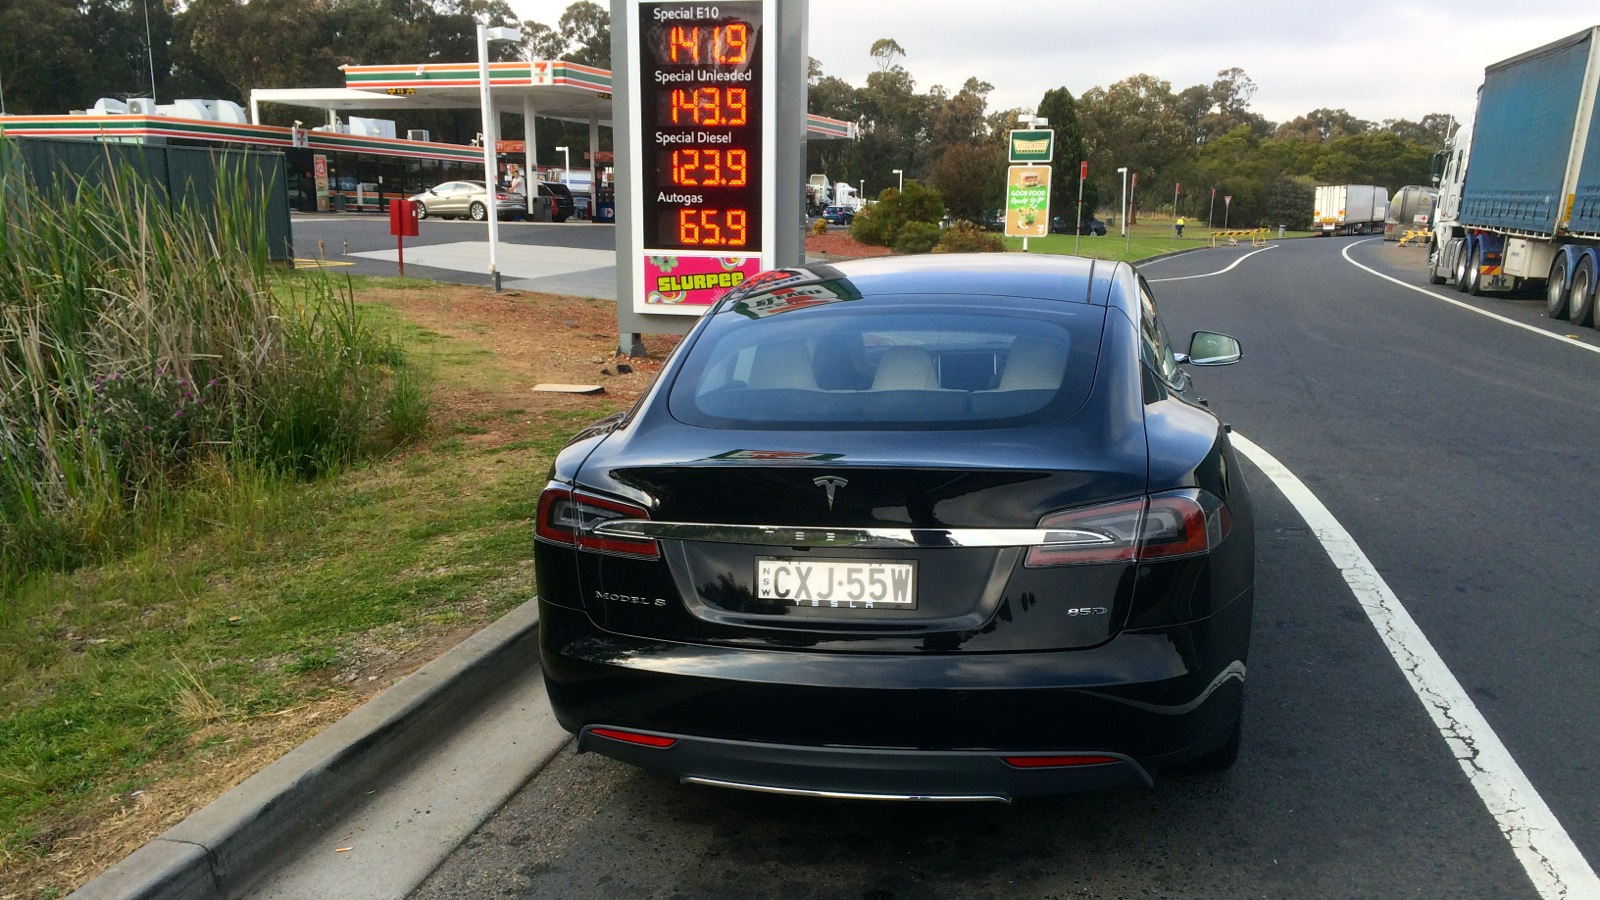 Elegant Tesla Model S Sydney To Melbourne Road Trip  Photos 1 Of 54